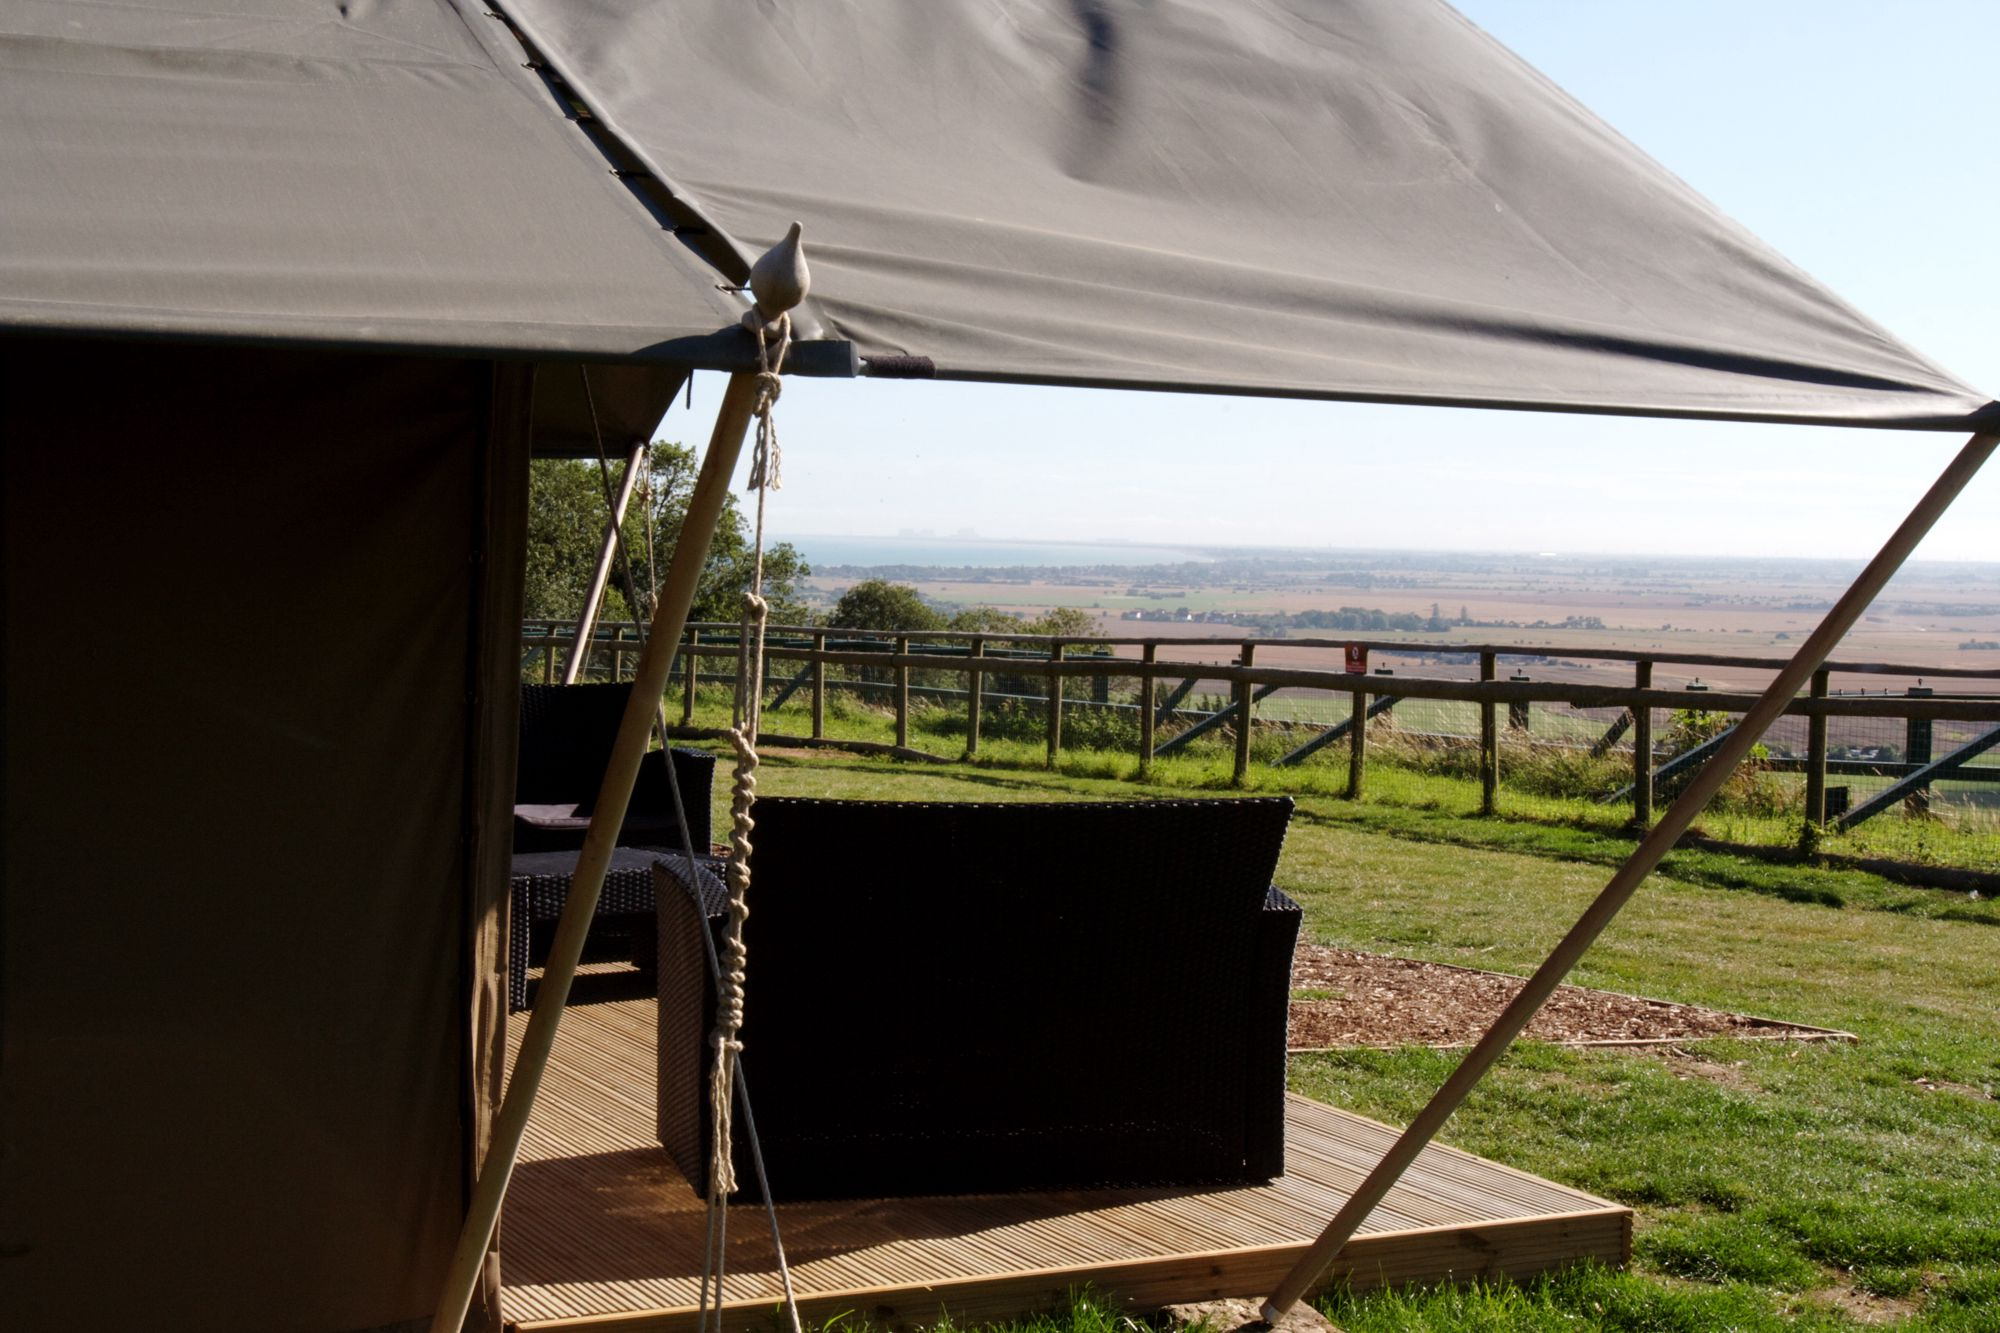 Brining an authentic African safari to the Garden of England, a stay at Elephant Lodge is one truly memorable glamping experience.